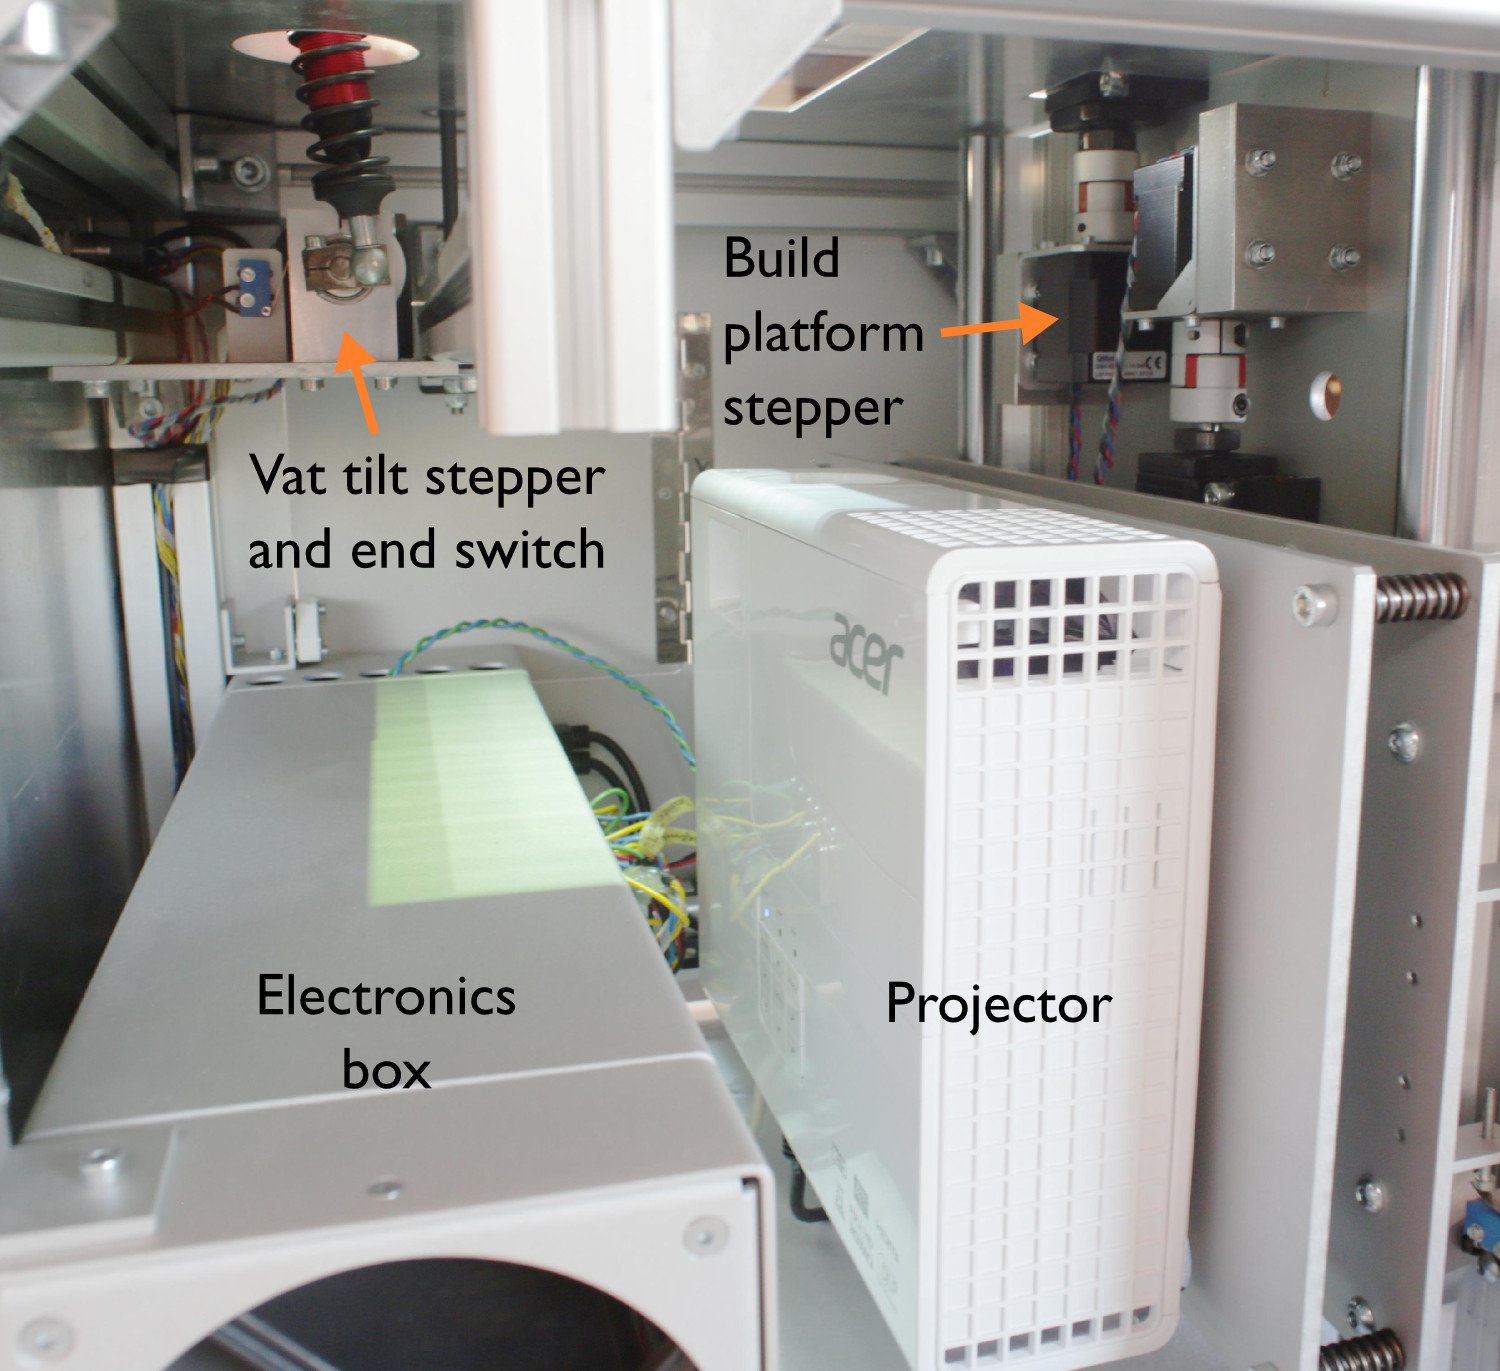 Photograph showing the inside of a DLP 3d printer. Some of the actuators that drive the printes mechanics can be seen.